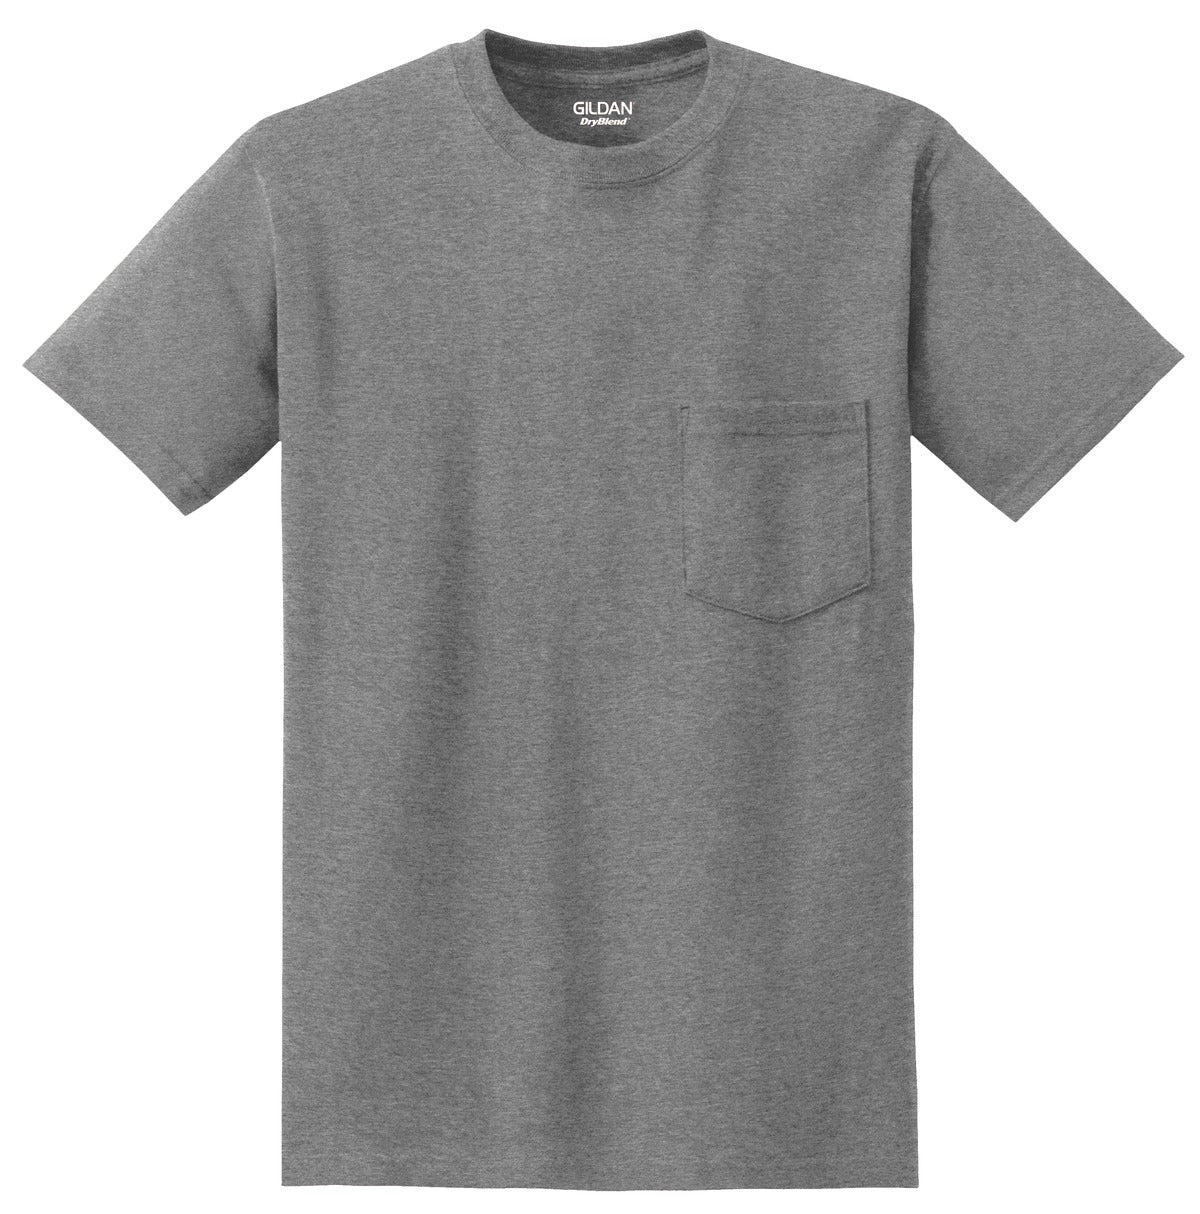 Sport Grey Gildan DryBlend 50 Cotton/50 Poly Pocket T-Shirt.